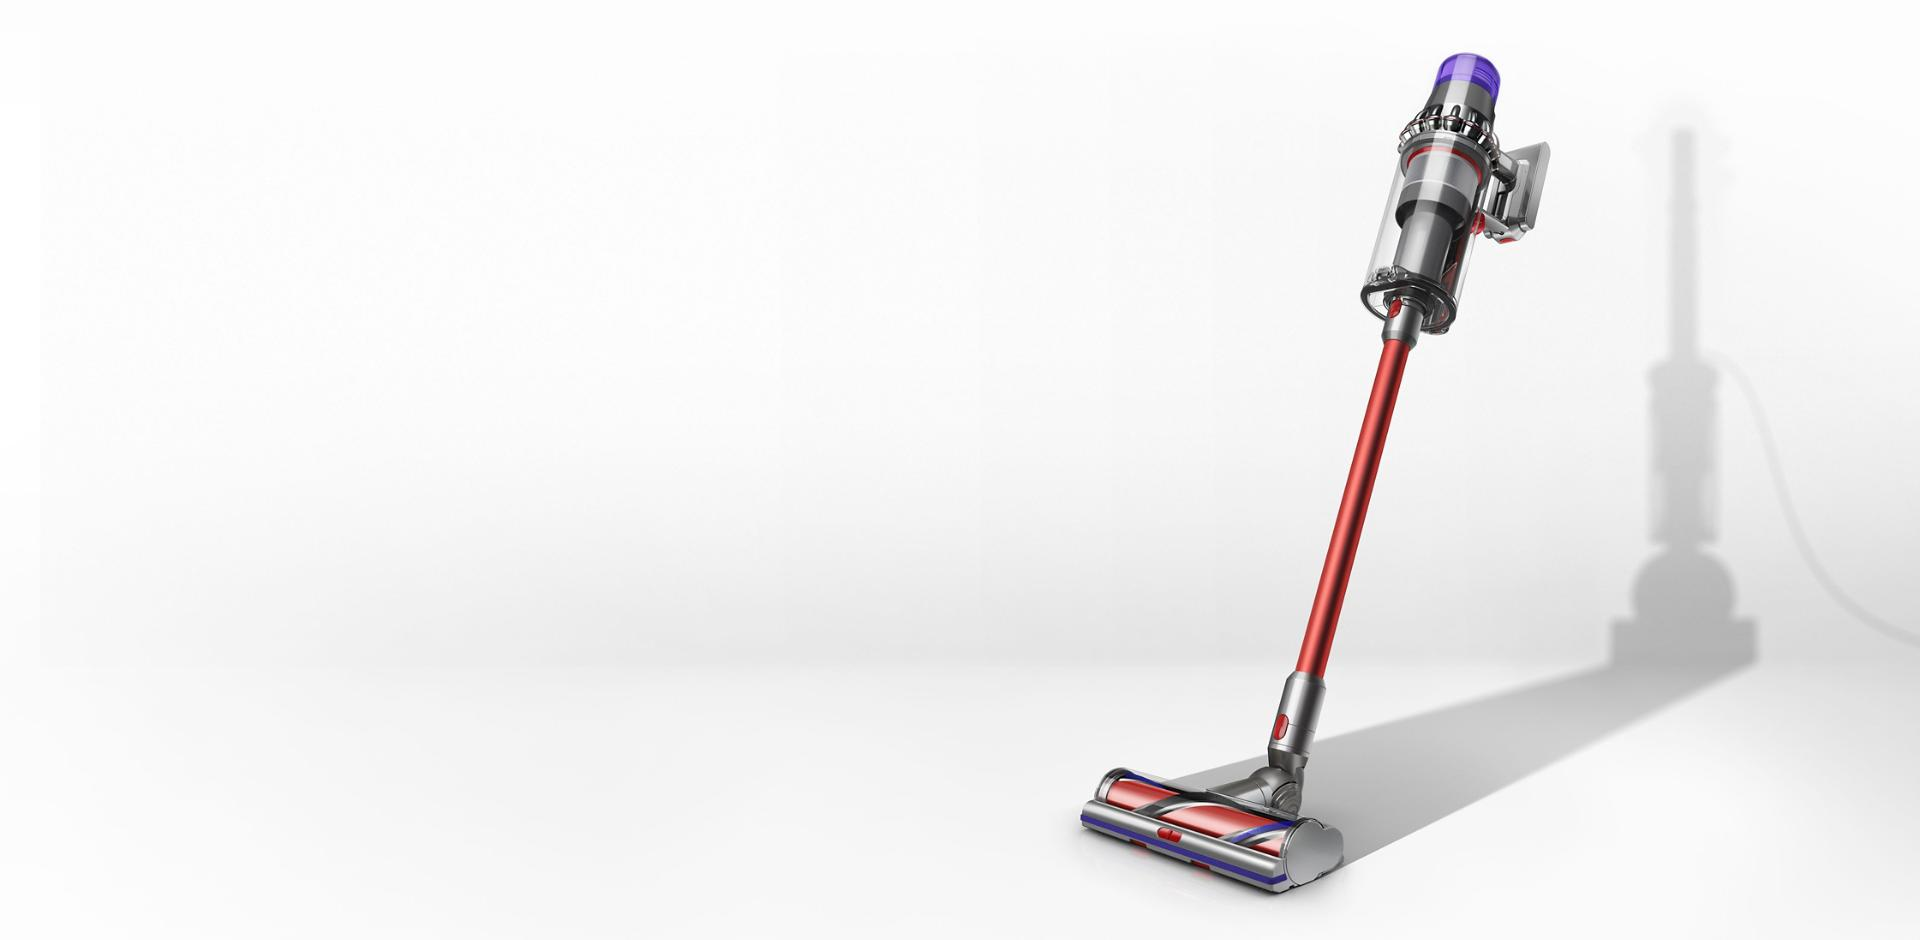 A Dyson V11 Outsize cordless vacuum with the shadow of a corded cleaner